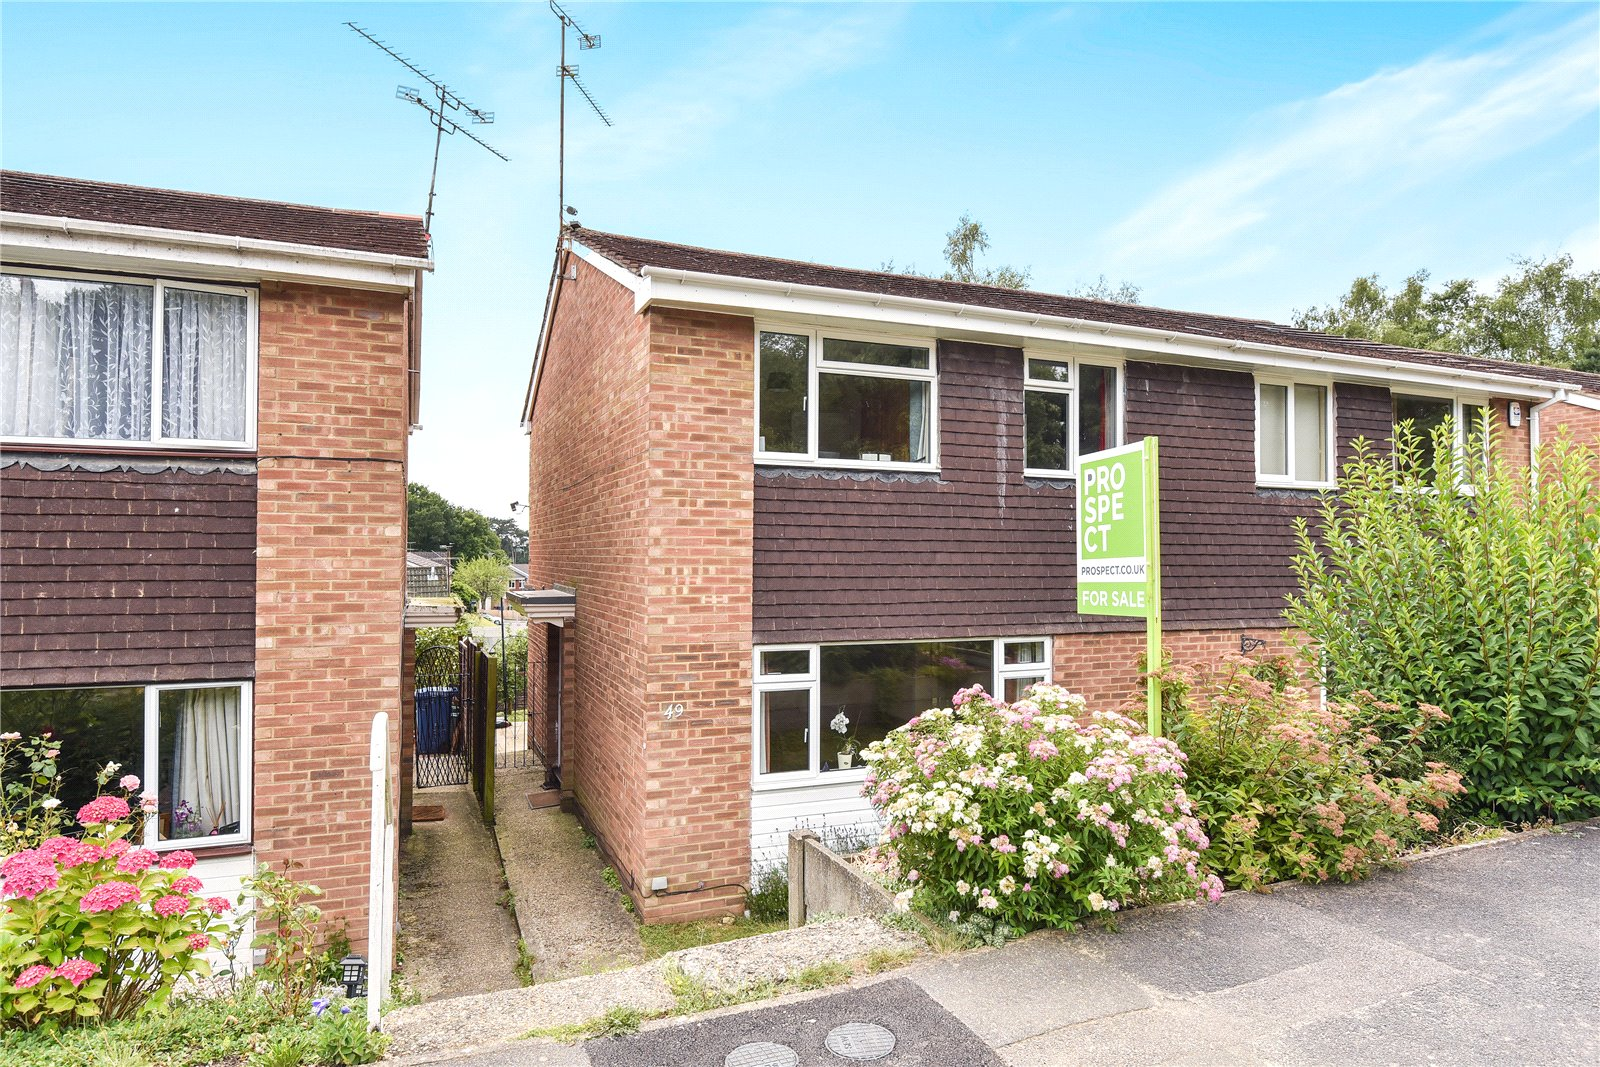 3 Bedrooms Semi Detached House for sale in Grampian Road, Little Sandhurst, Berkshire, GU47